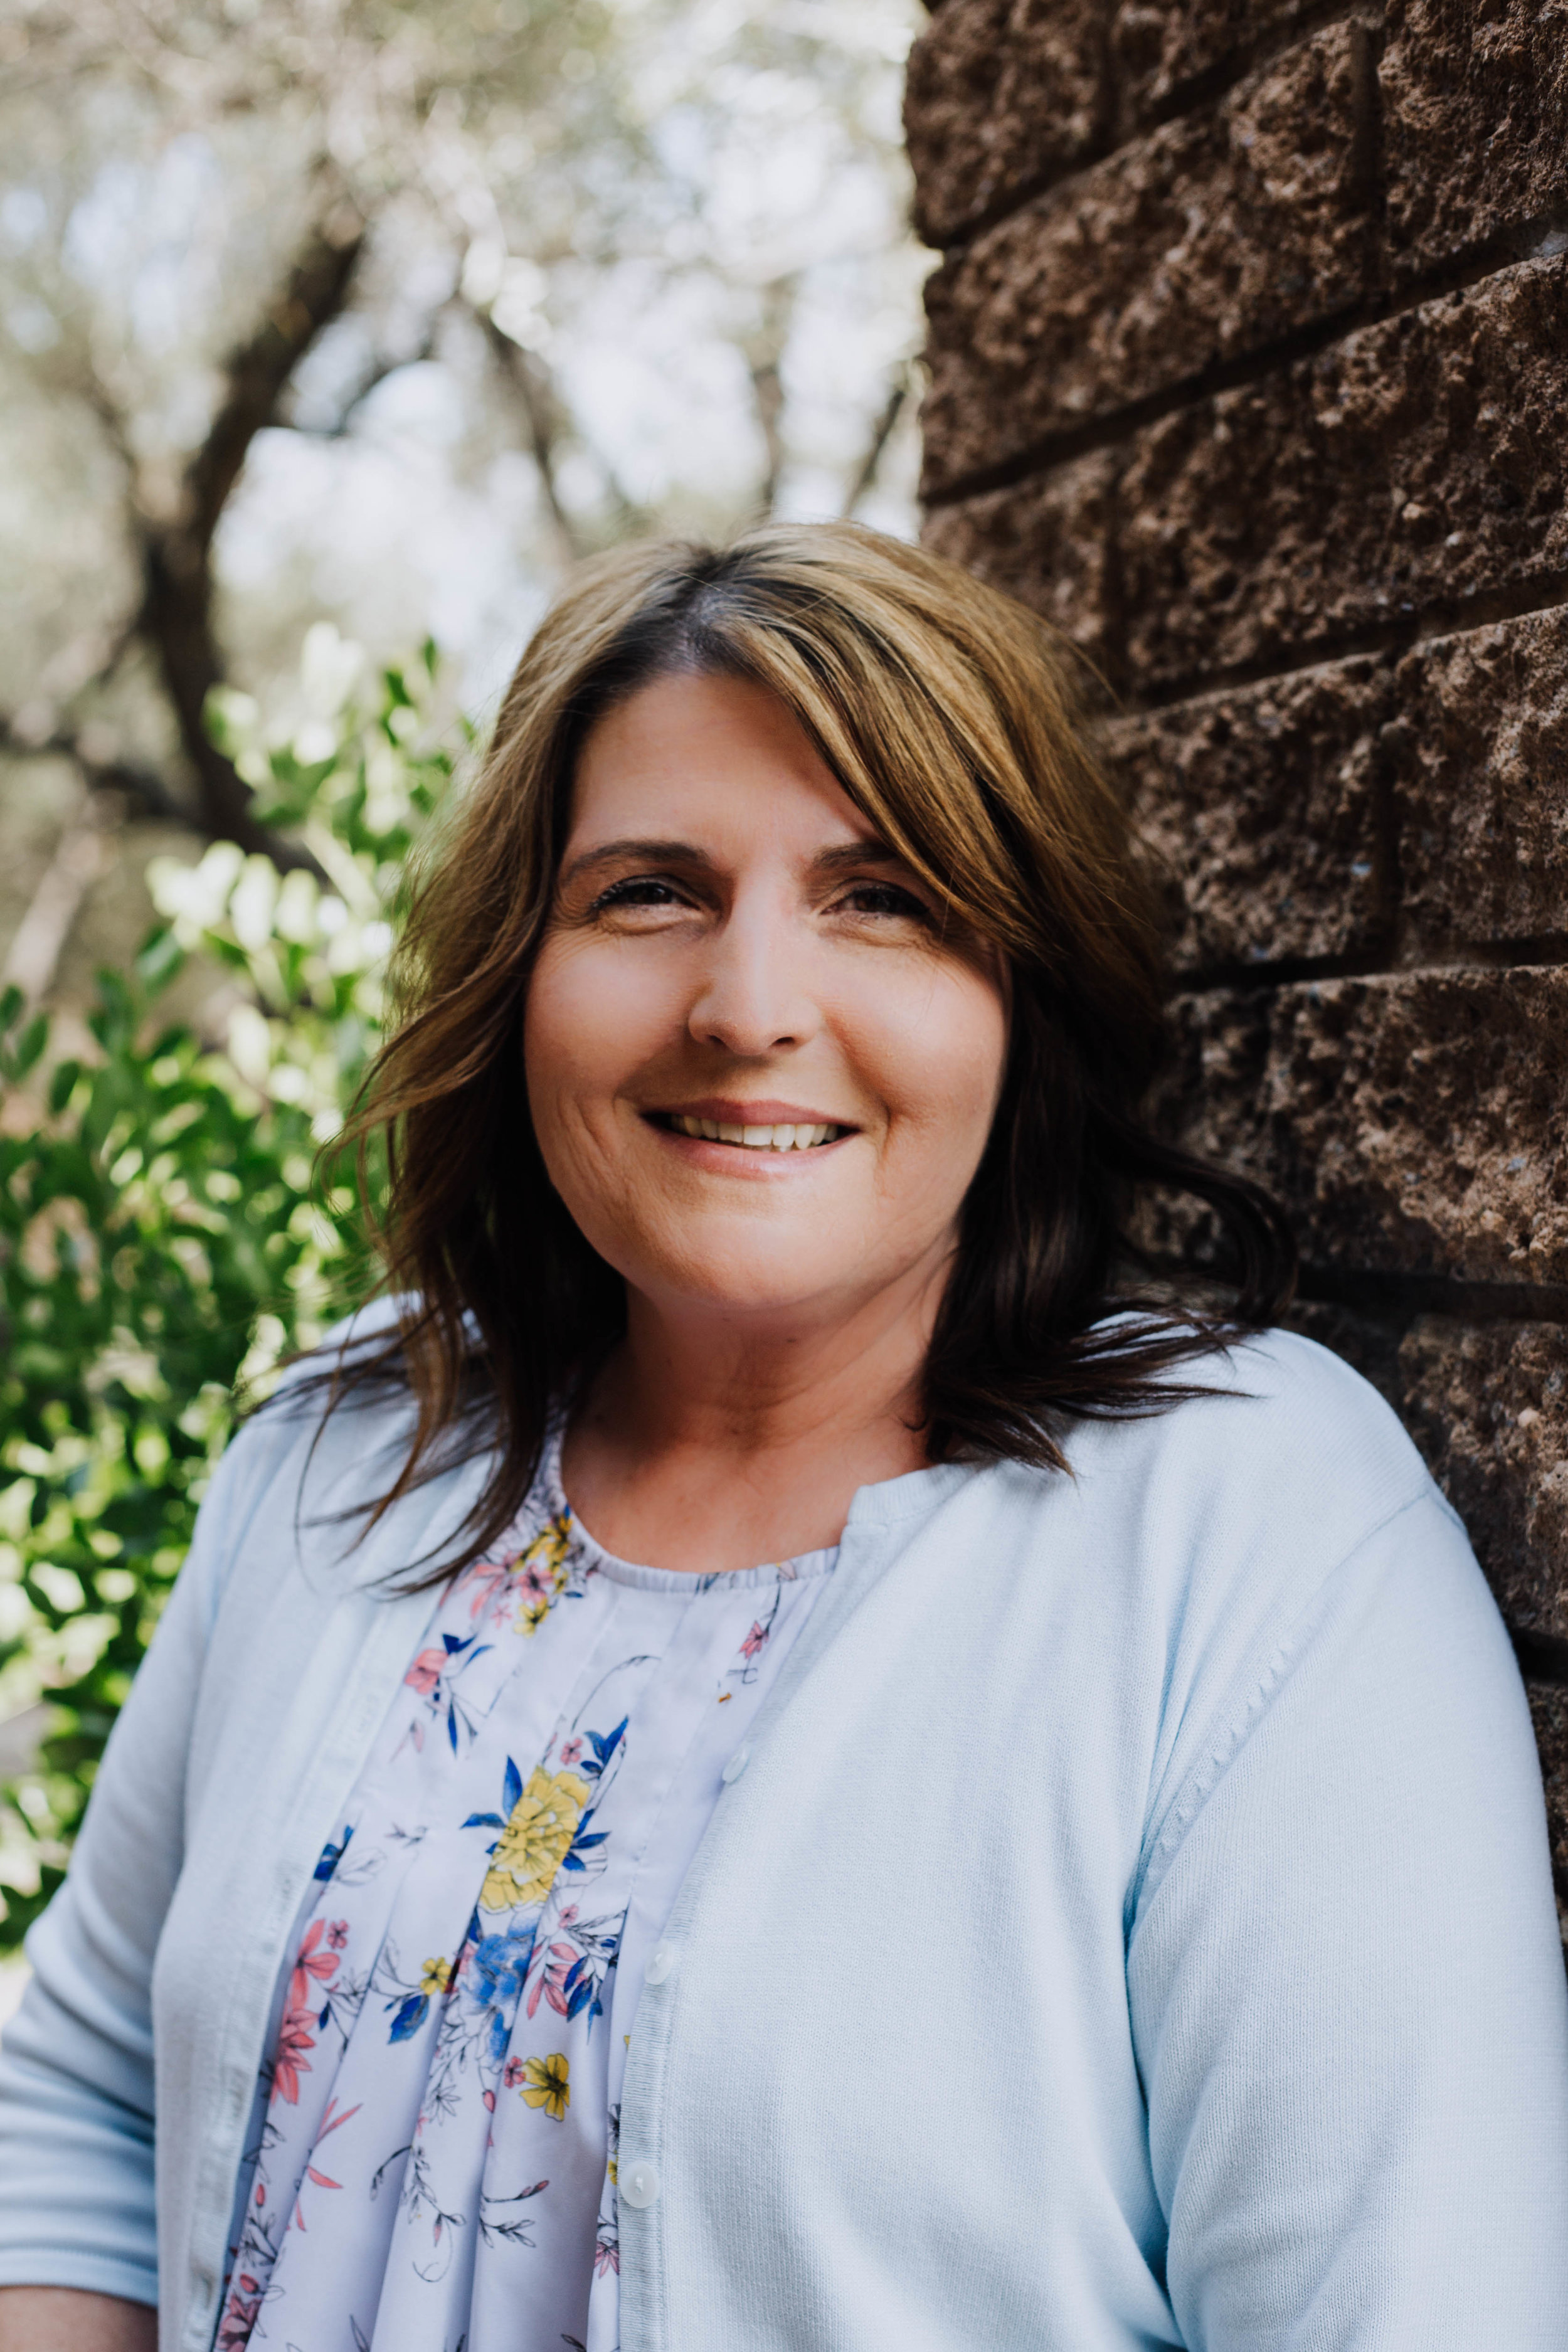 Melissa Lynch - Melissa has been a member of Linn, Phillips & Associates since 2014. Melissa works hard to assist client's needs and keep people happy. She works alongside Jill, handling administrative tasks as well as tax work and bookkeeping.Email: melissa@stevephillipscpa.com